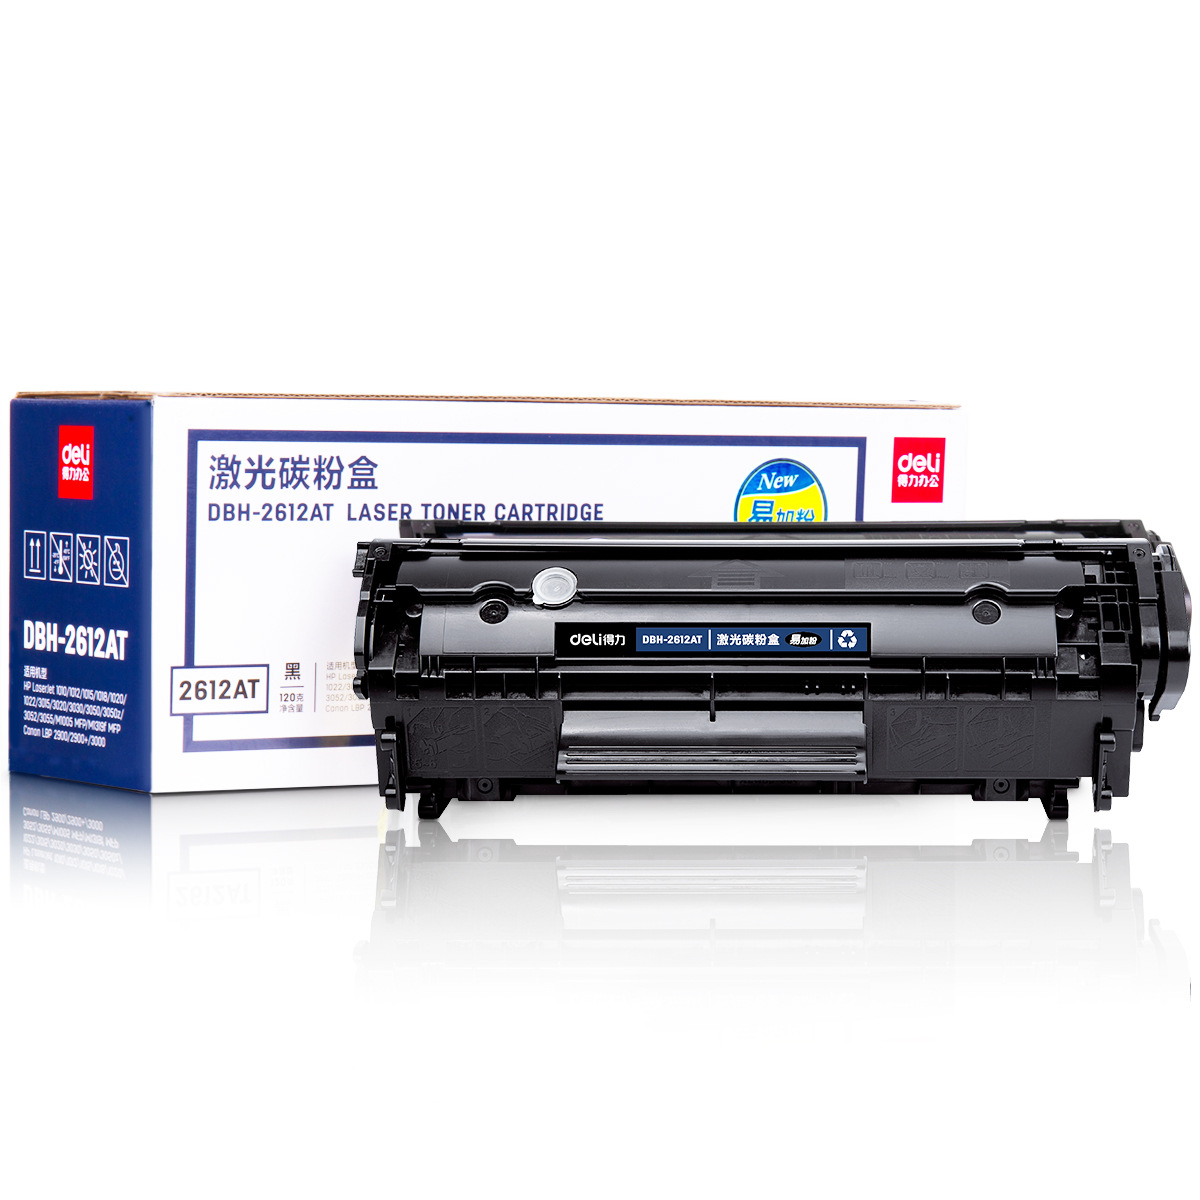 DELI Powerful Office DBH-2612AT Laser Toner Cartridge Laser Printer Toner Cartridge HP1020 HP1005 HP